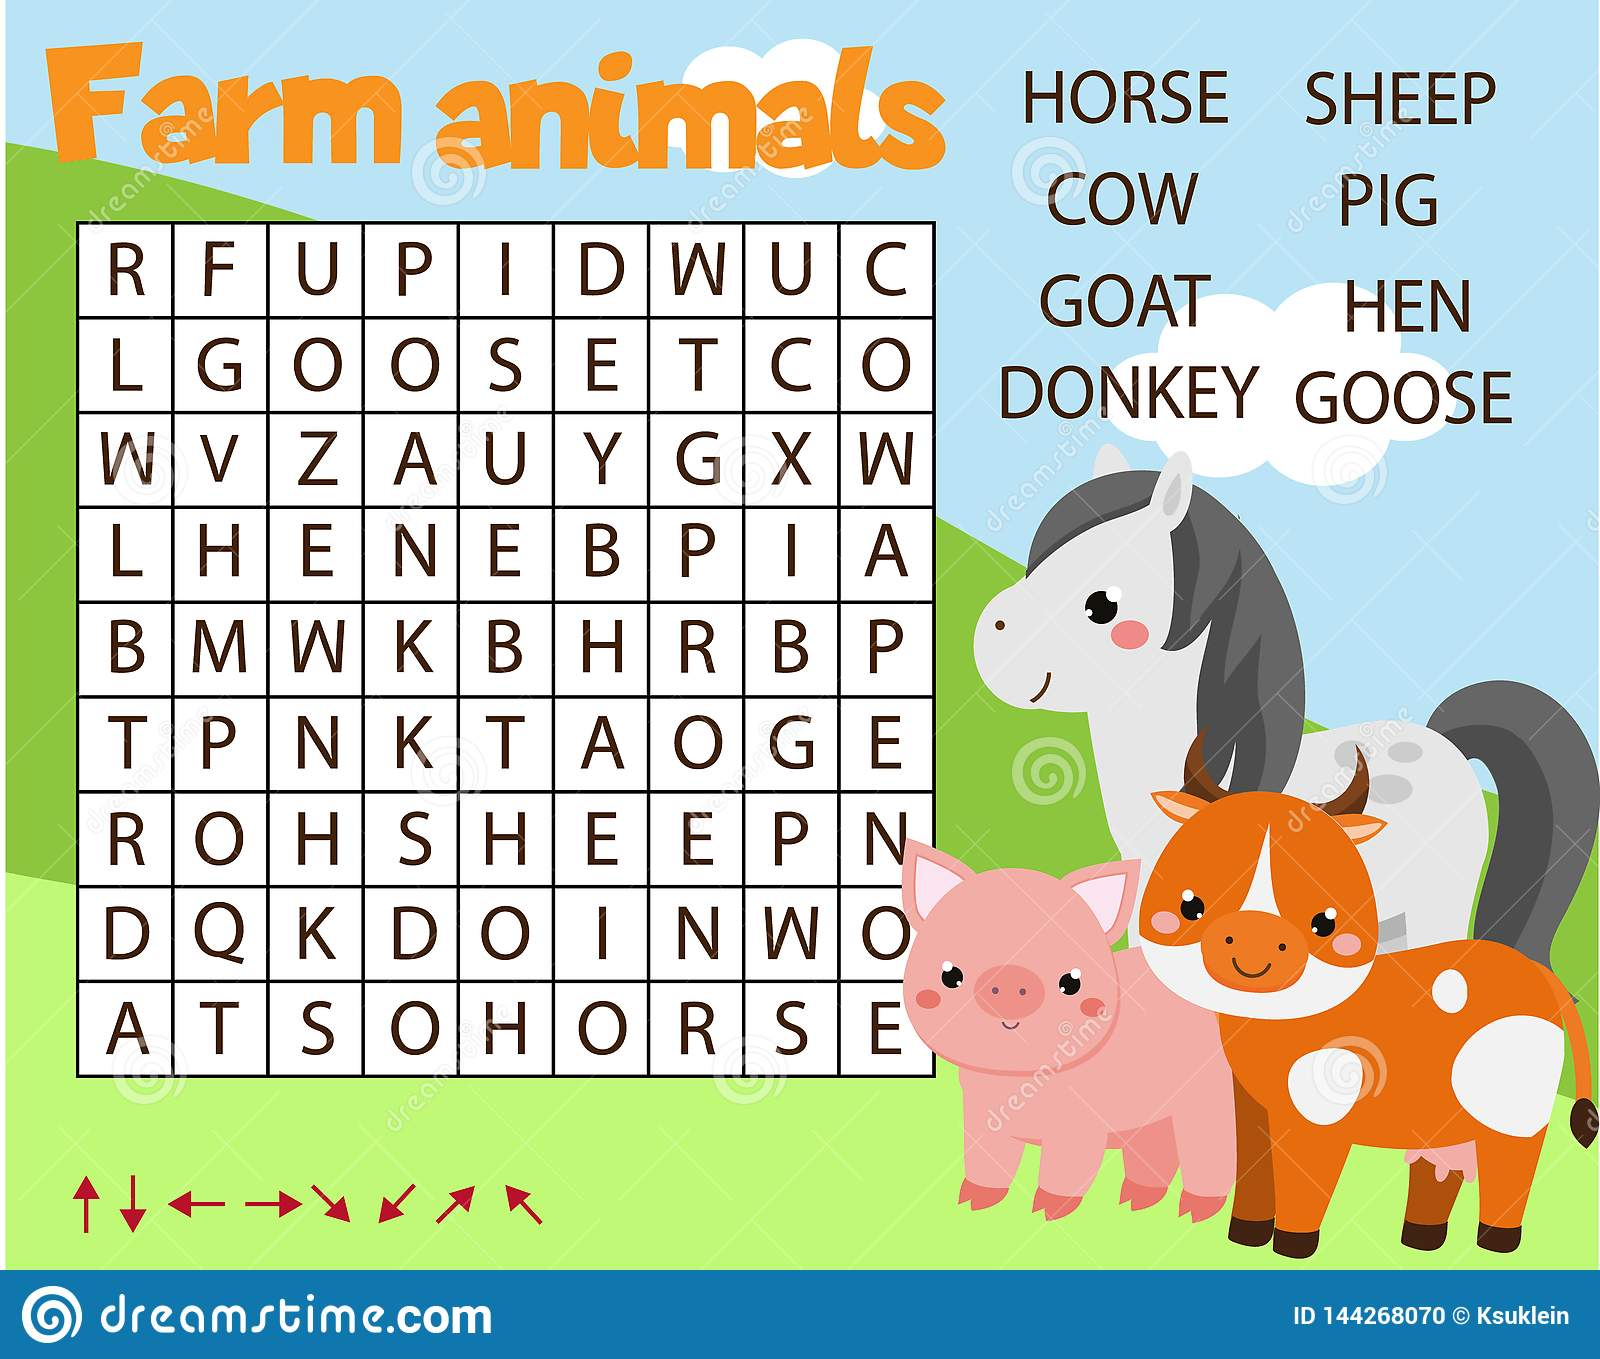 Educational Game For Children Word Search Puzzle Kids Activity Farm Animals Theme Learning Vocabulary For Toddlers Stock Vector Illustration Of Activity Development 144268070